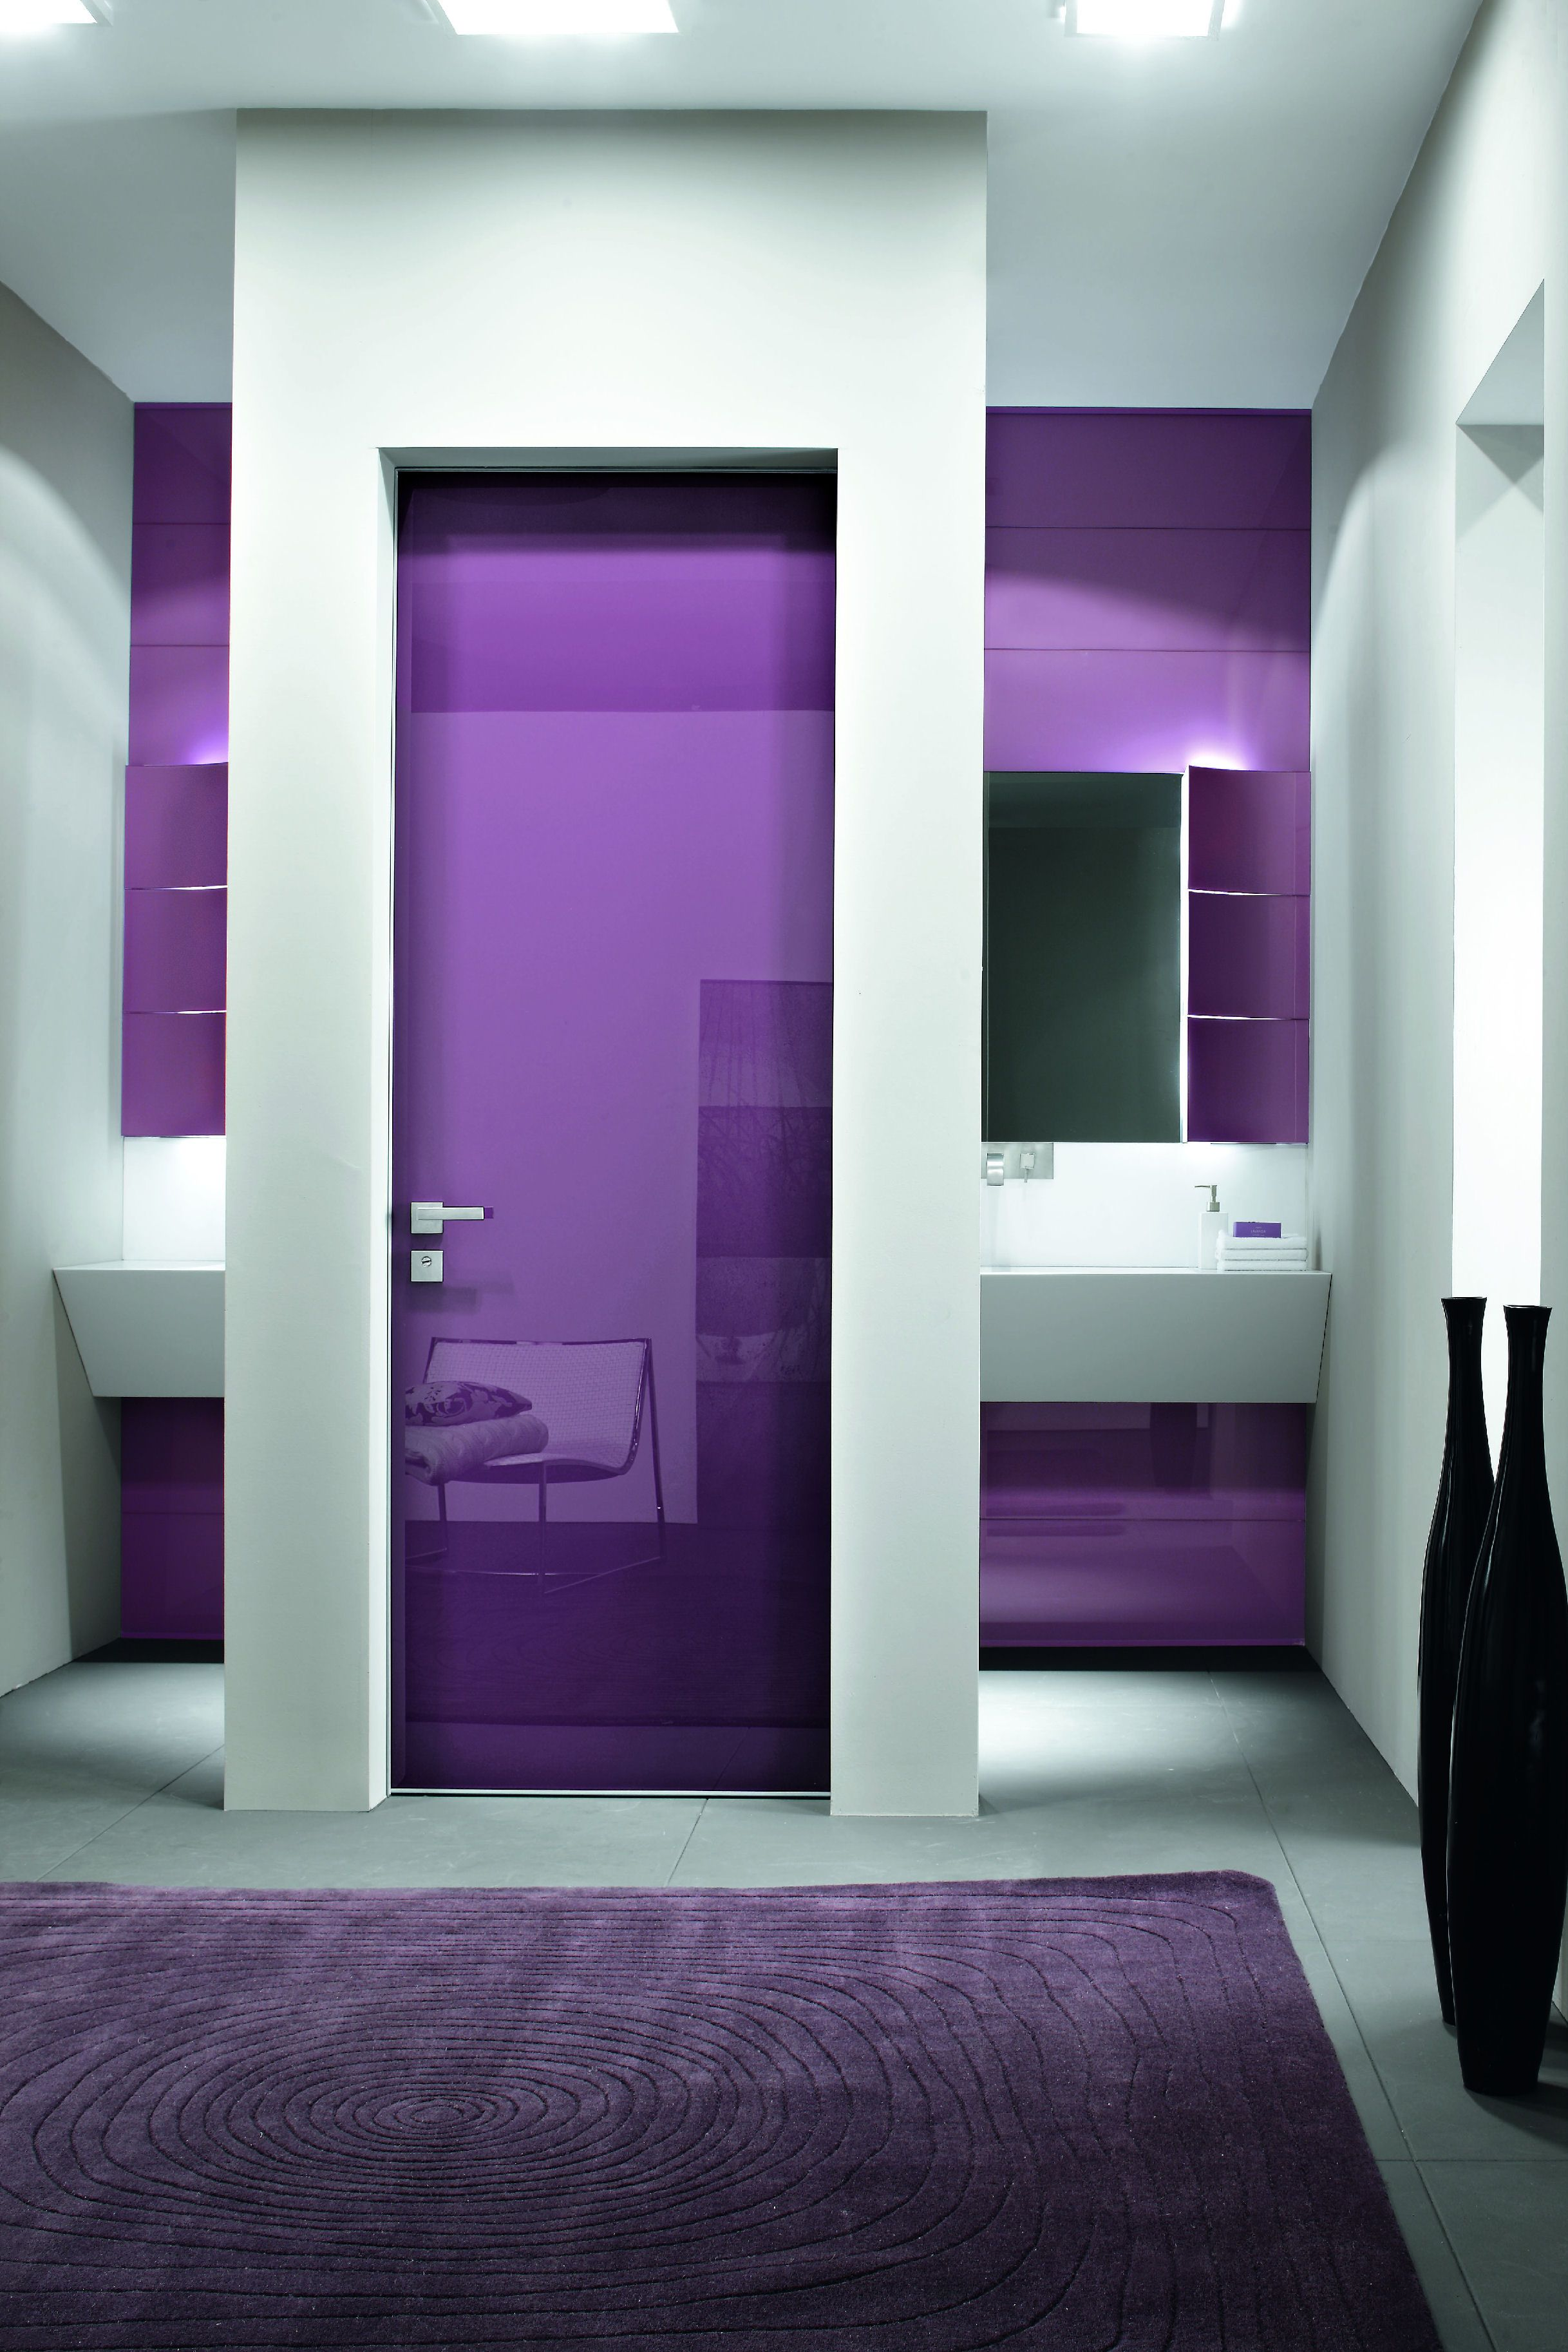 Interiors Entrance Doorsbeautiful Bathroomsglassbathroom